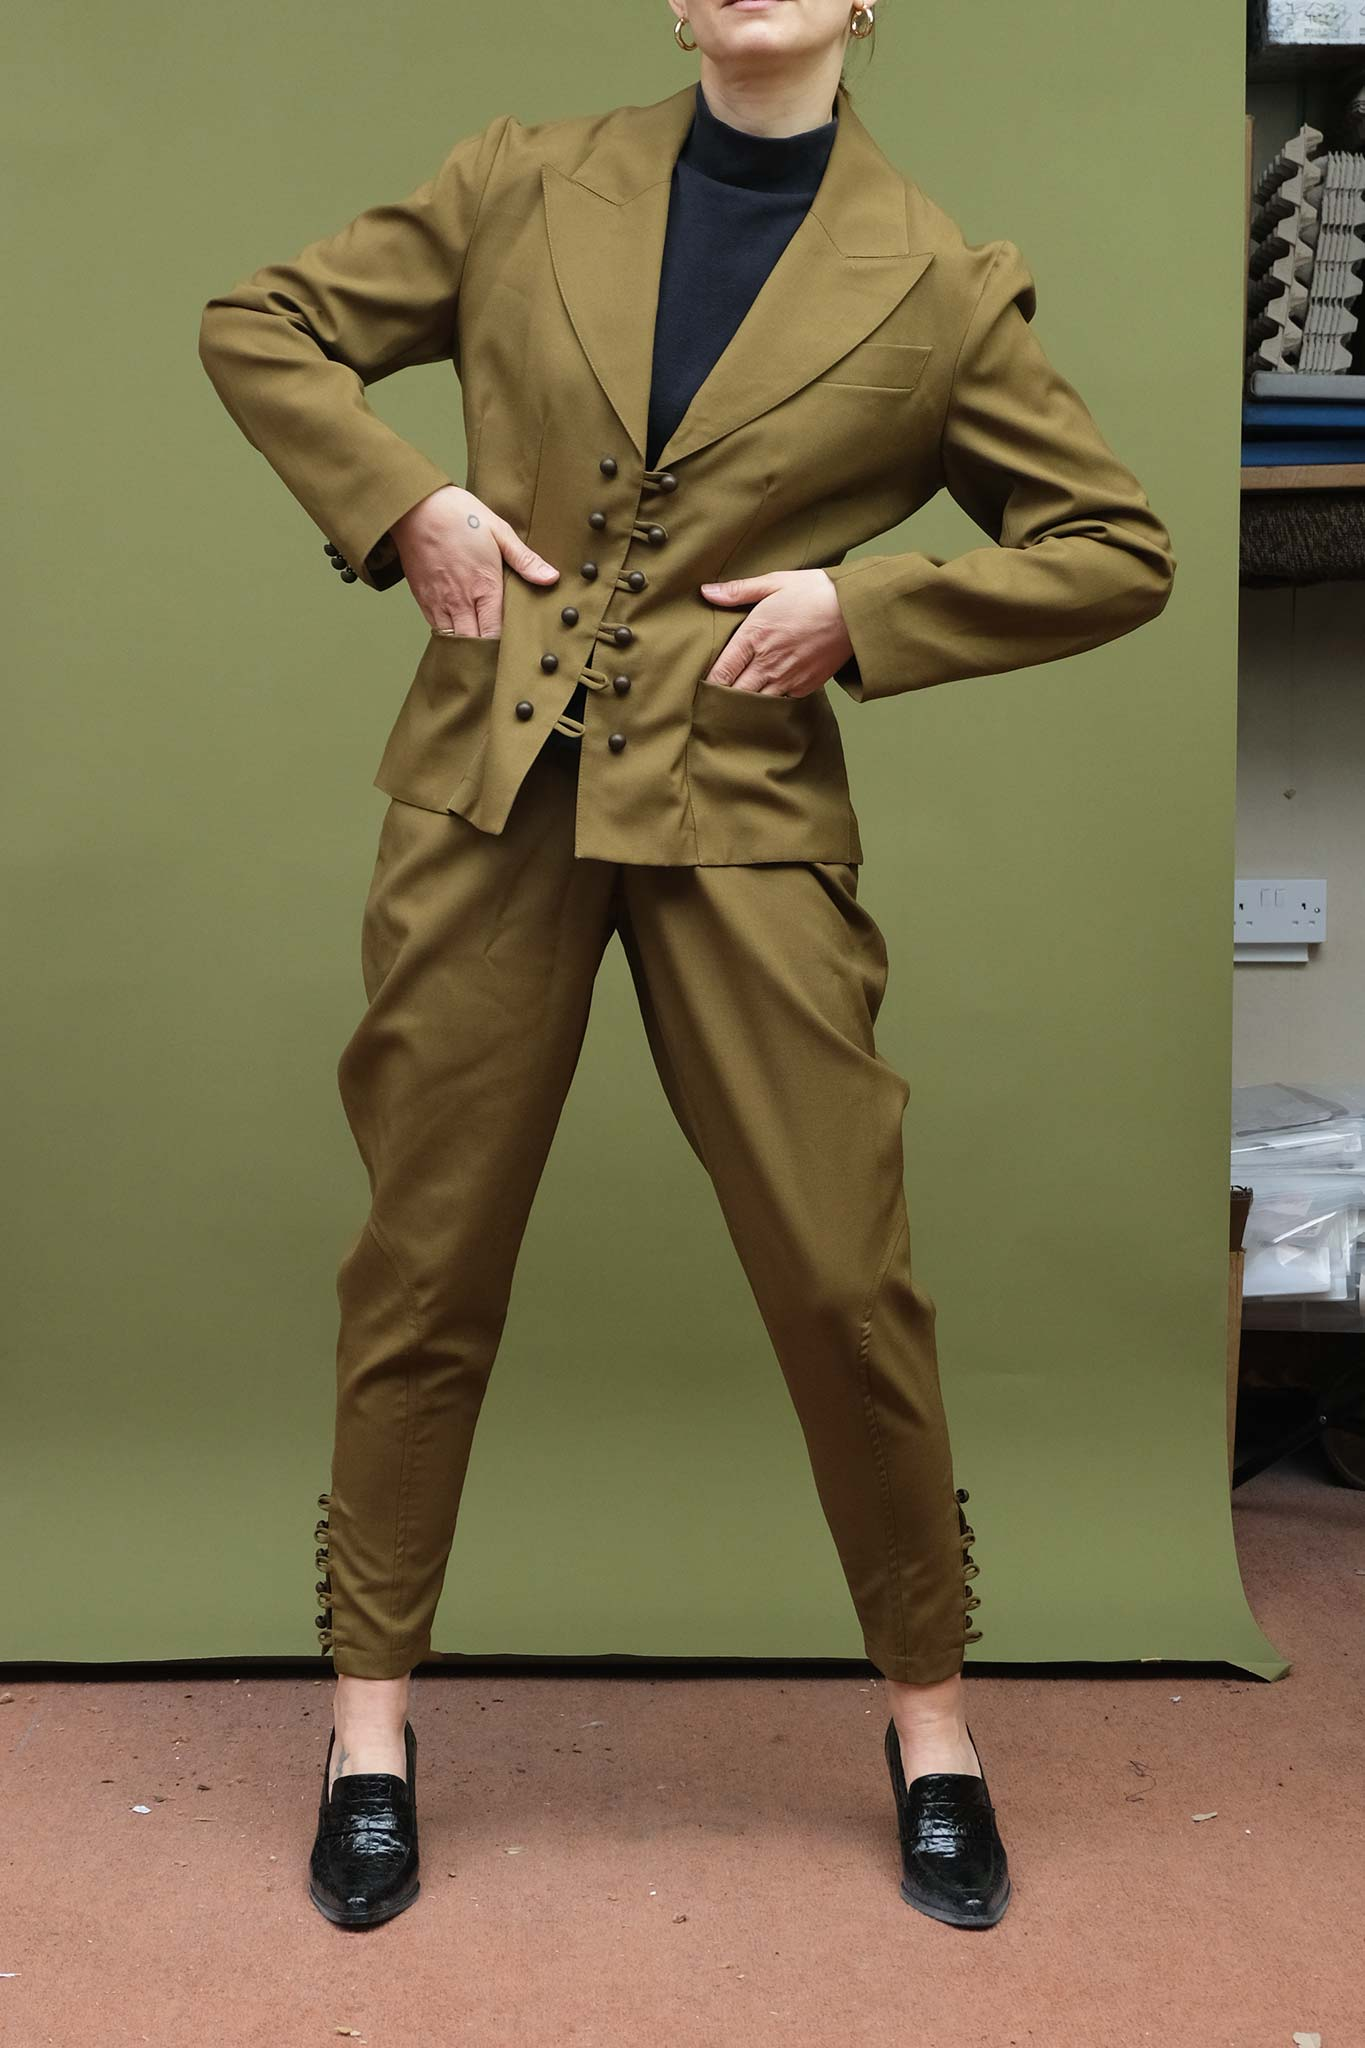 80s Outfit Inspiration, Party Ideas Vintage WOLF  GYPSY VINTAGE 1980s Suit - olive green $55.00 AT vintagedancer.com